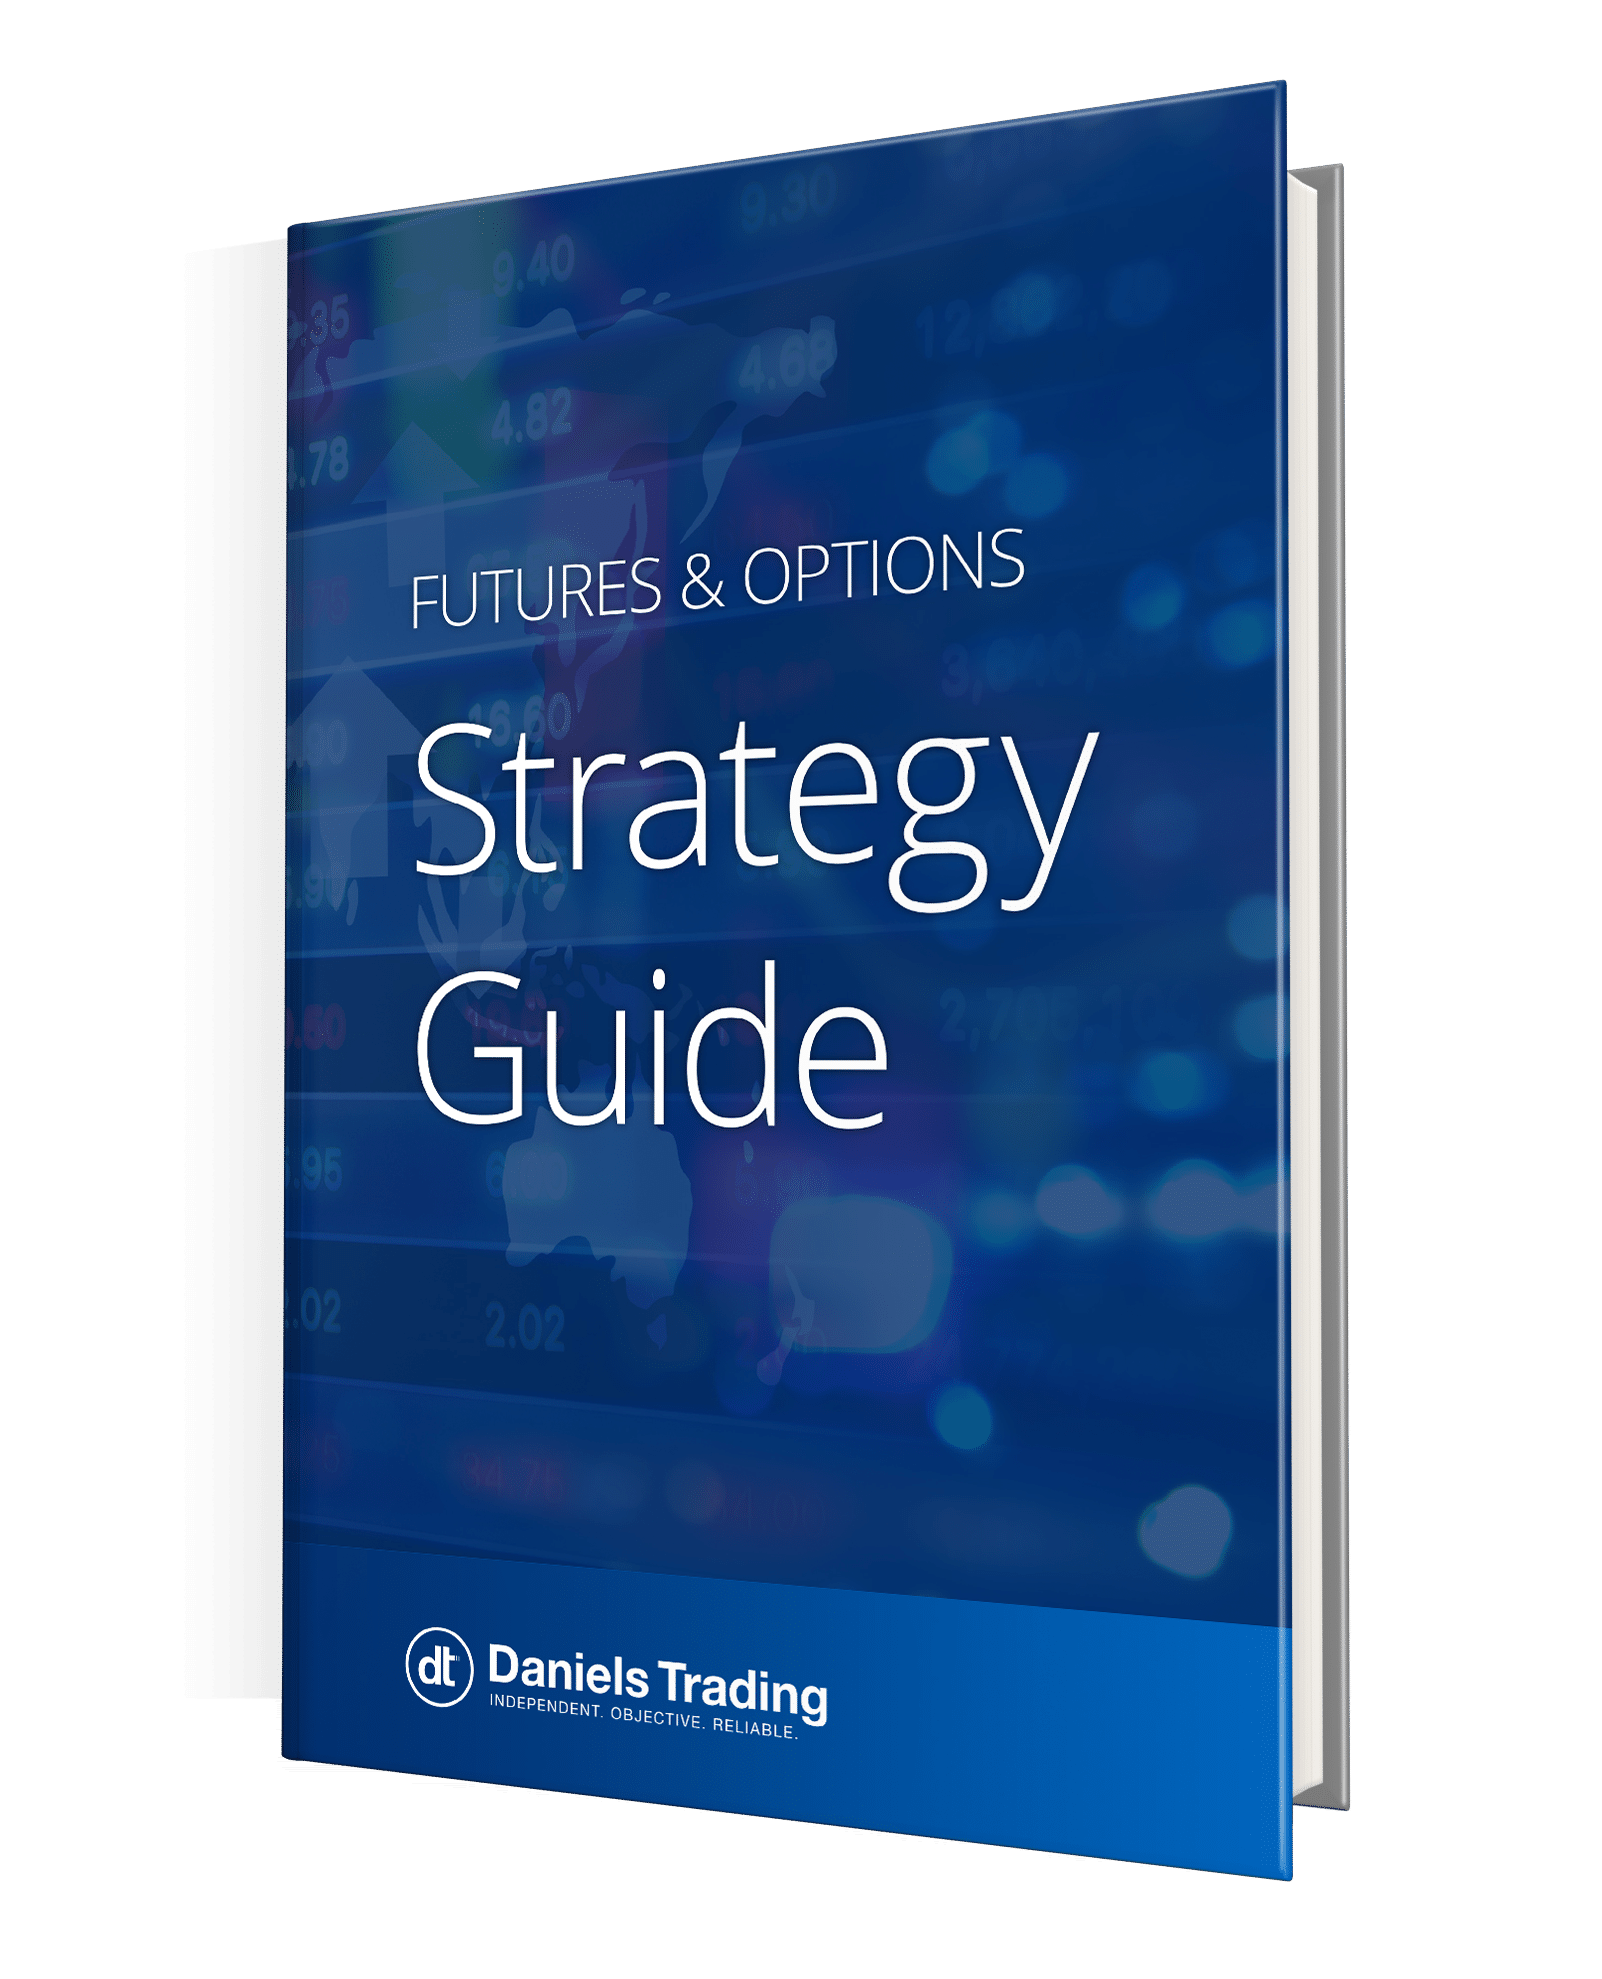 Digital options trading strategy